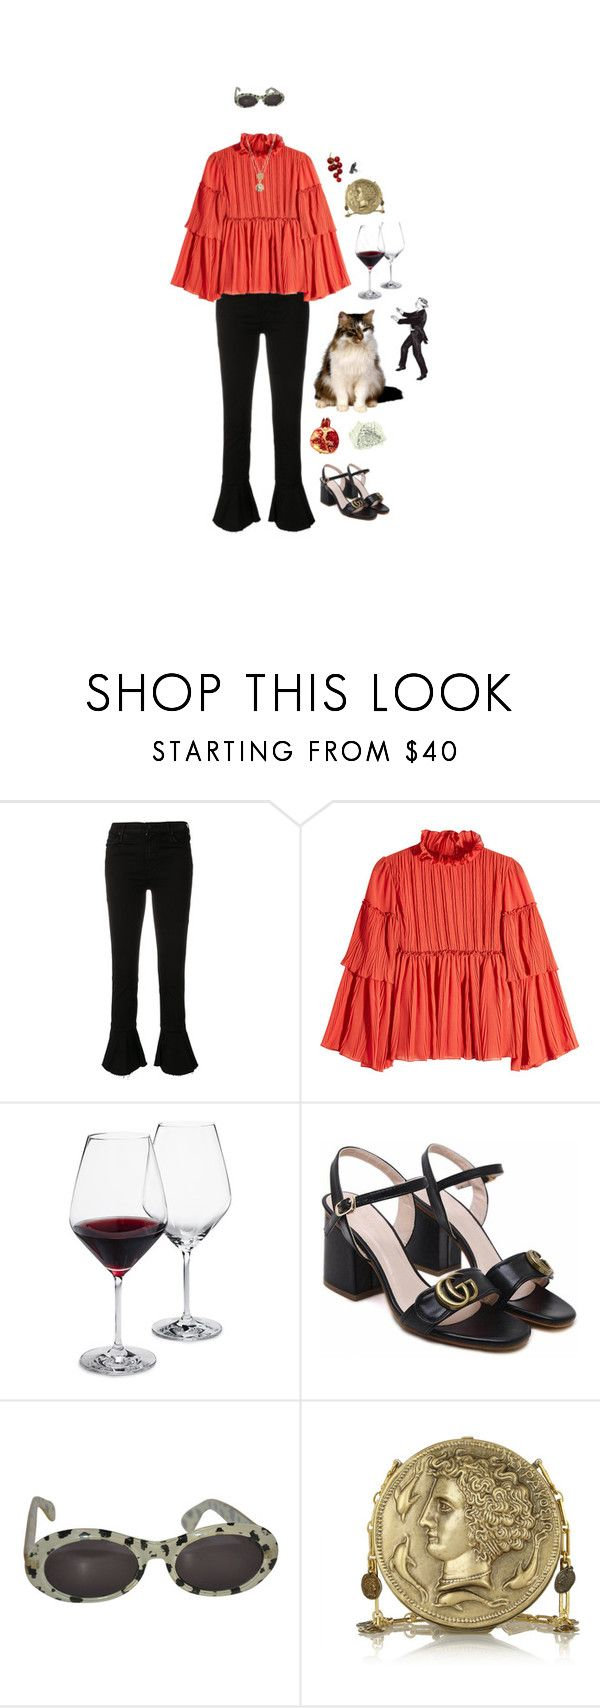 """""""I Swallow All Tests"""" by ana-valery22 ❤ liked on Polyvore featuring Mother, See by Chloé, Schott Zwiesel, WithChic and Dolce&Gabbana"""